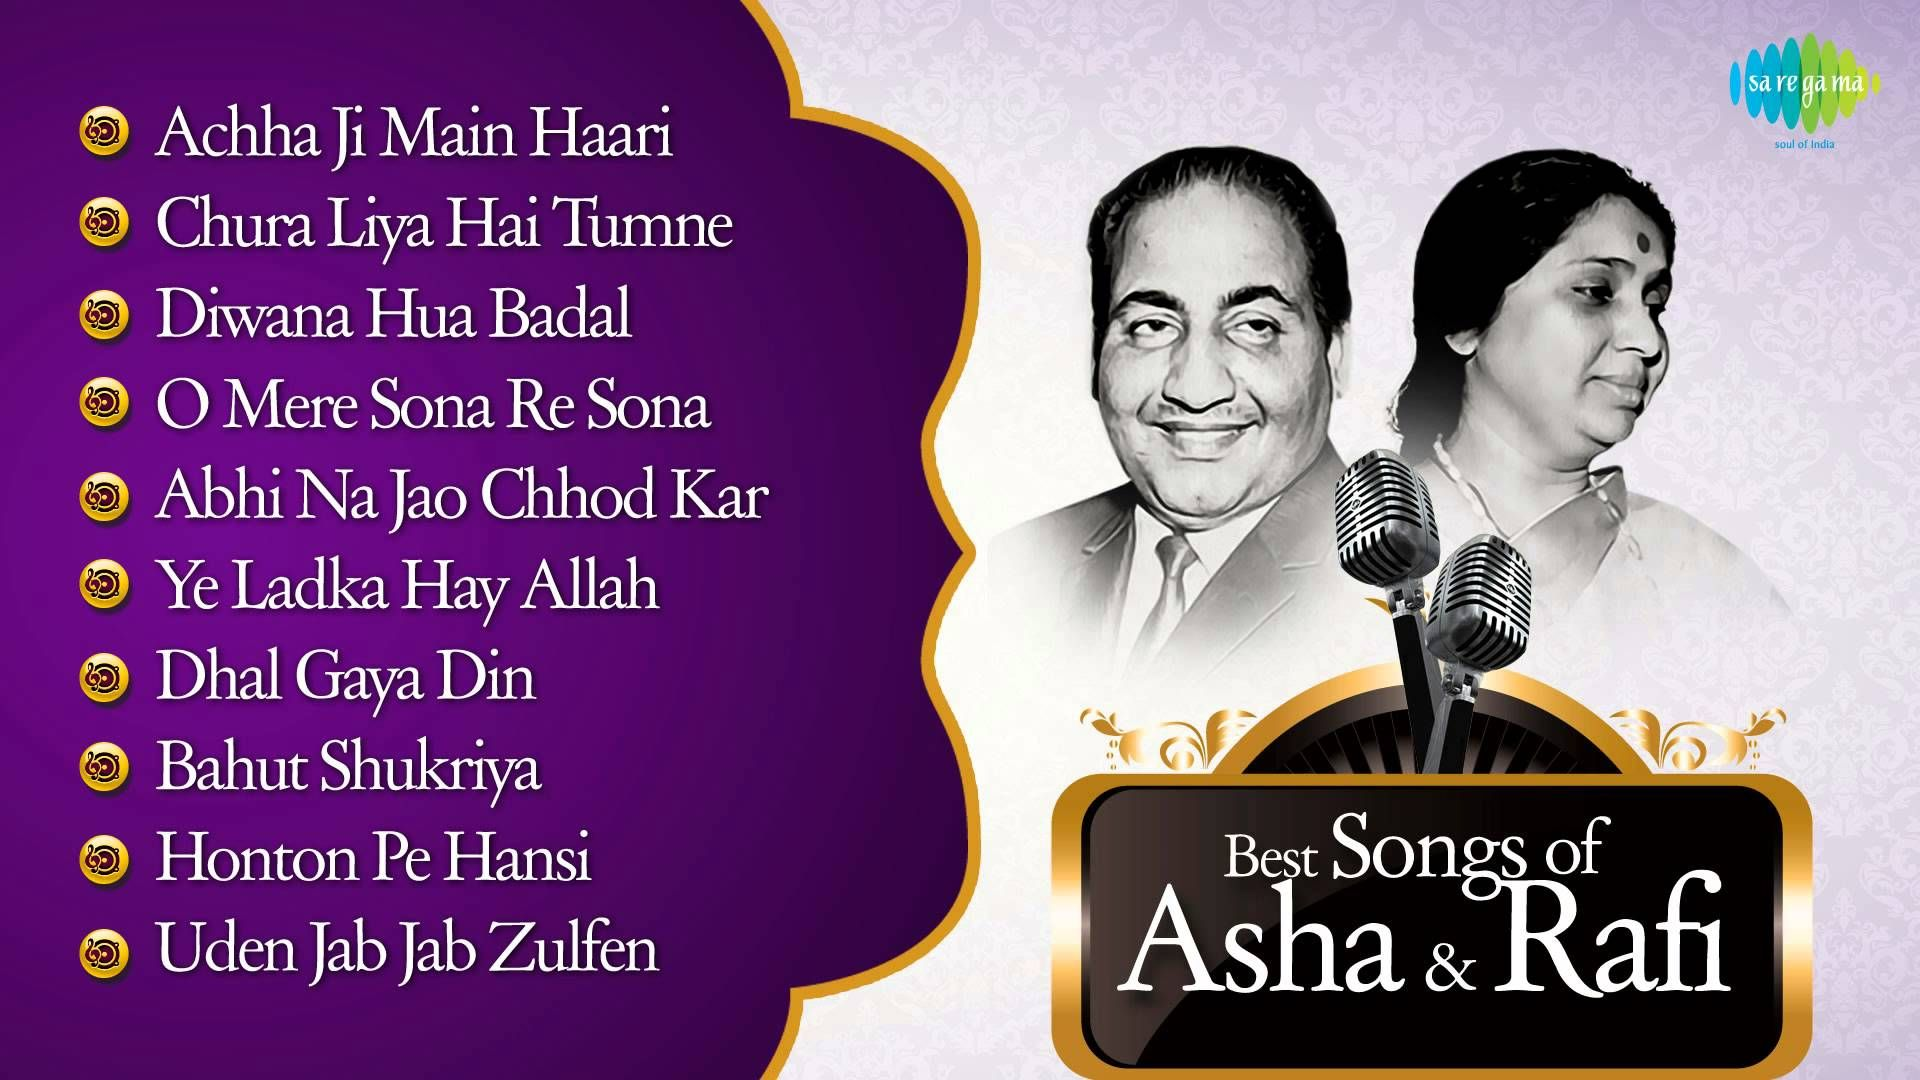 Best Of Asha Mohd Rafi Asha Duet Songs Old Hindi Songs Asha Mohd Rafi Duets Old Hindi Movie Songs Hindi Old Songs Songs This hindi song is terrific in its reach among the masses. best of asha mohd rafi asha duet